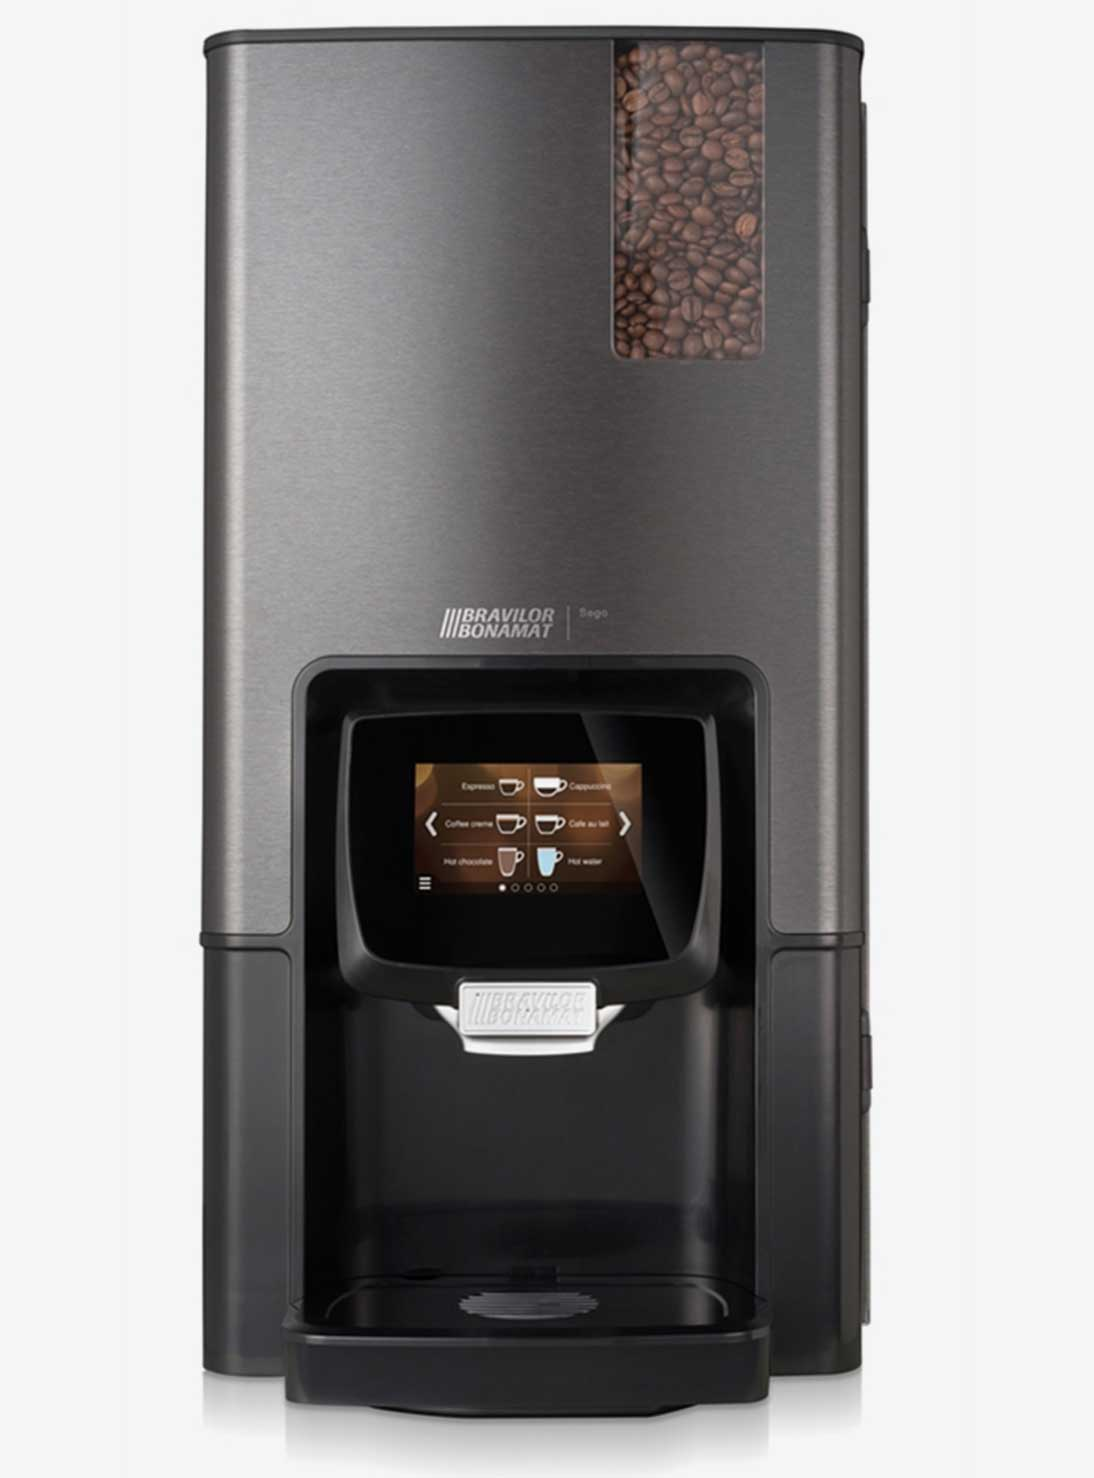 Sego nespresso machine and vending machine